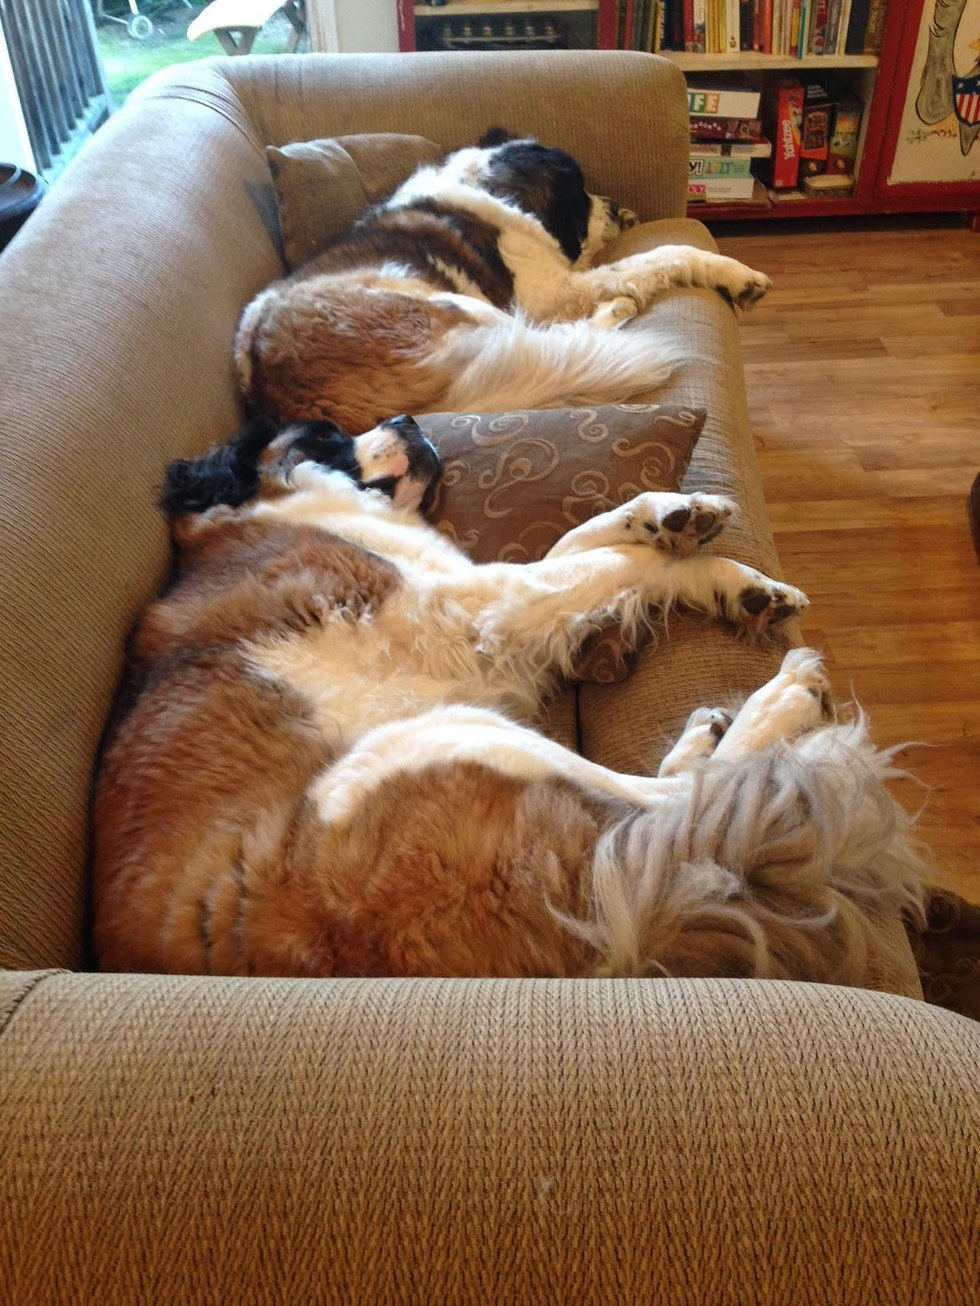 St. Bernard dog sleeping on the couch in her new home